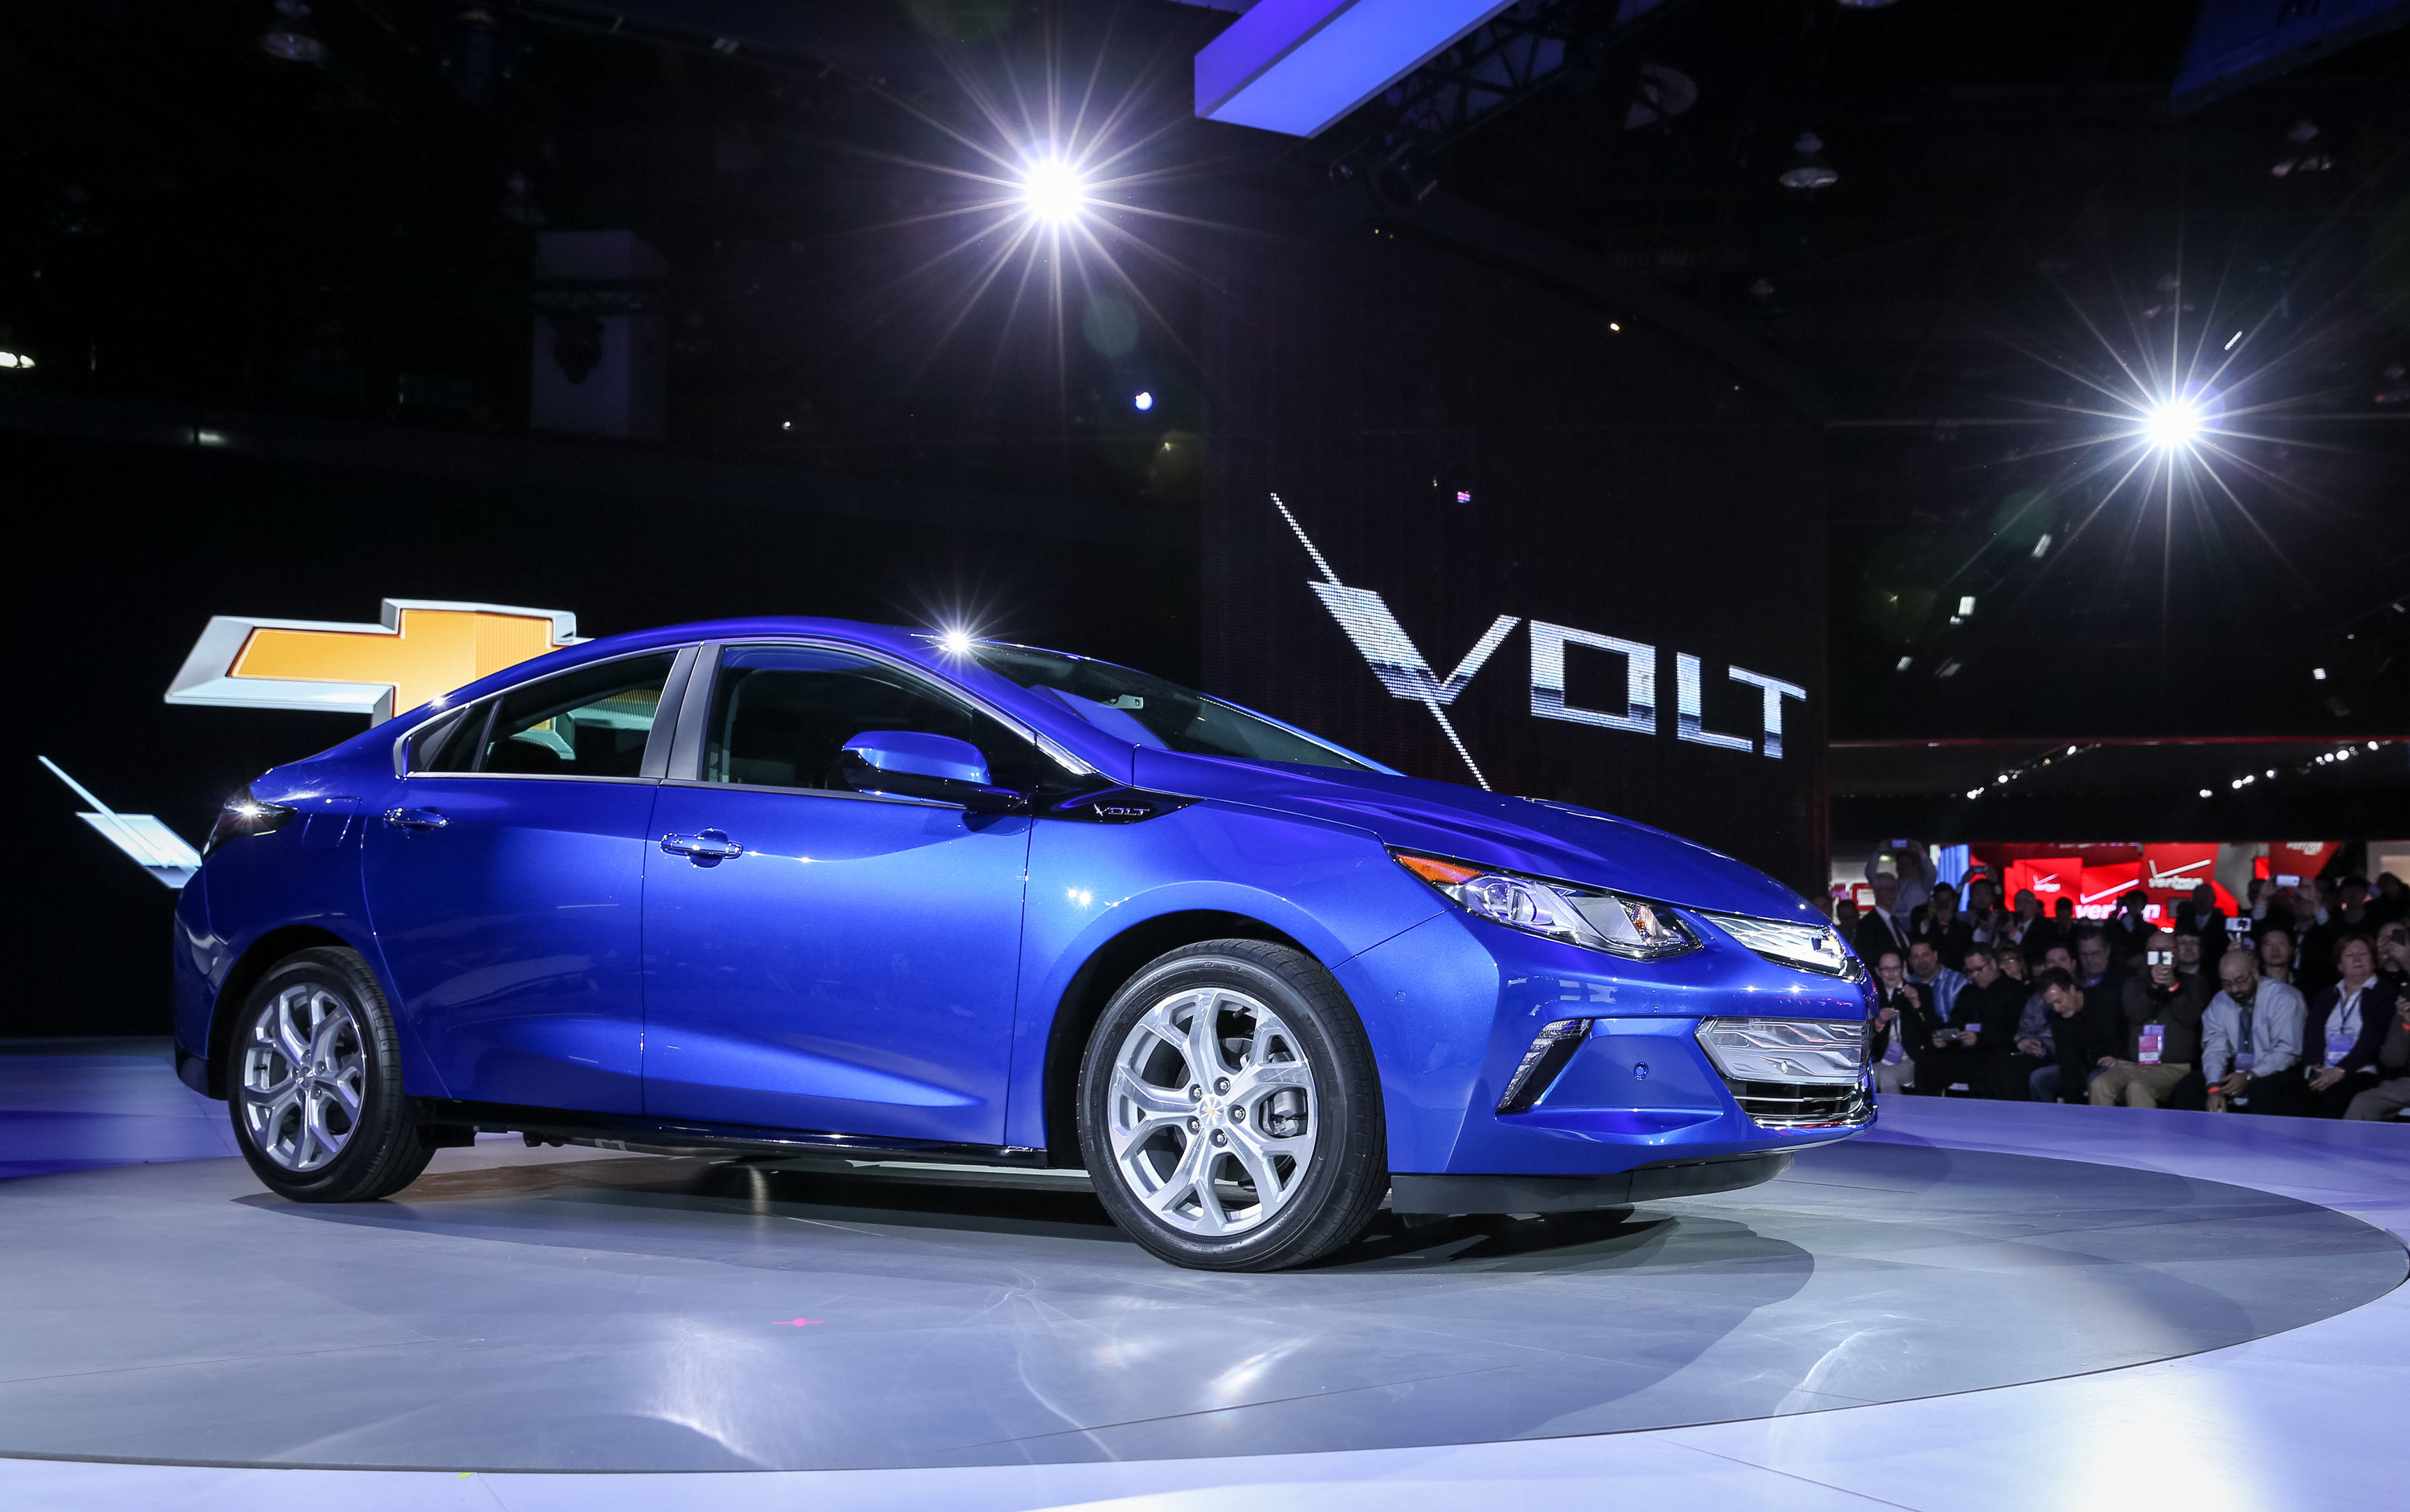 New Chevy Volt Electric Car Can Go 50 Miles On A Single Battery